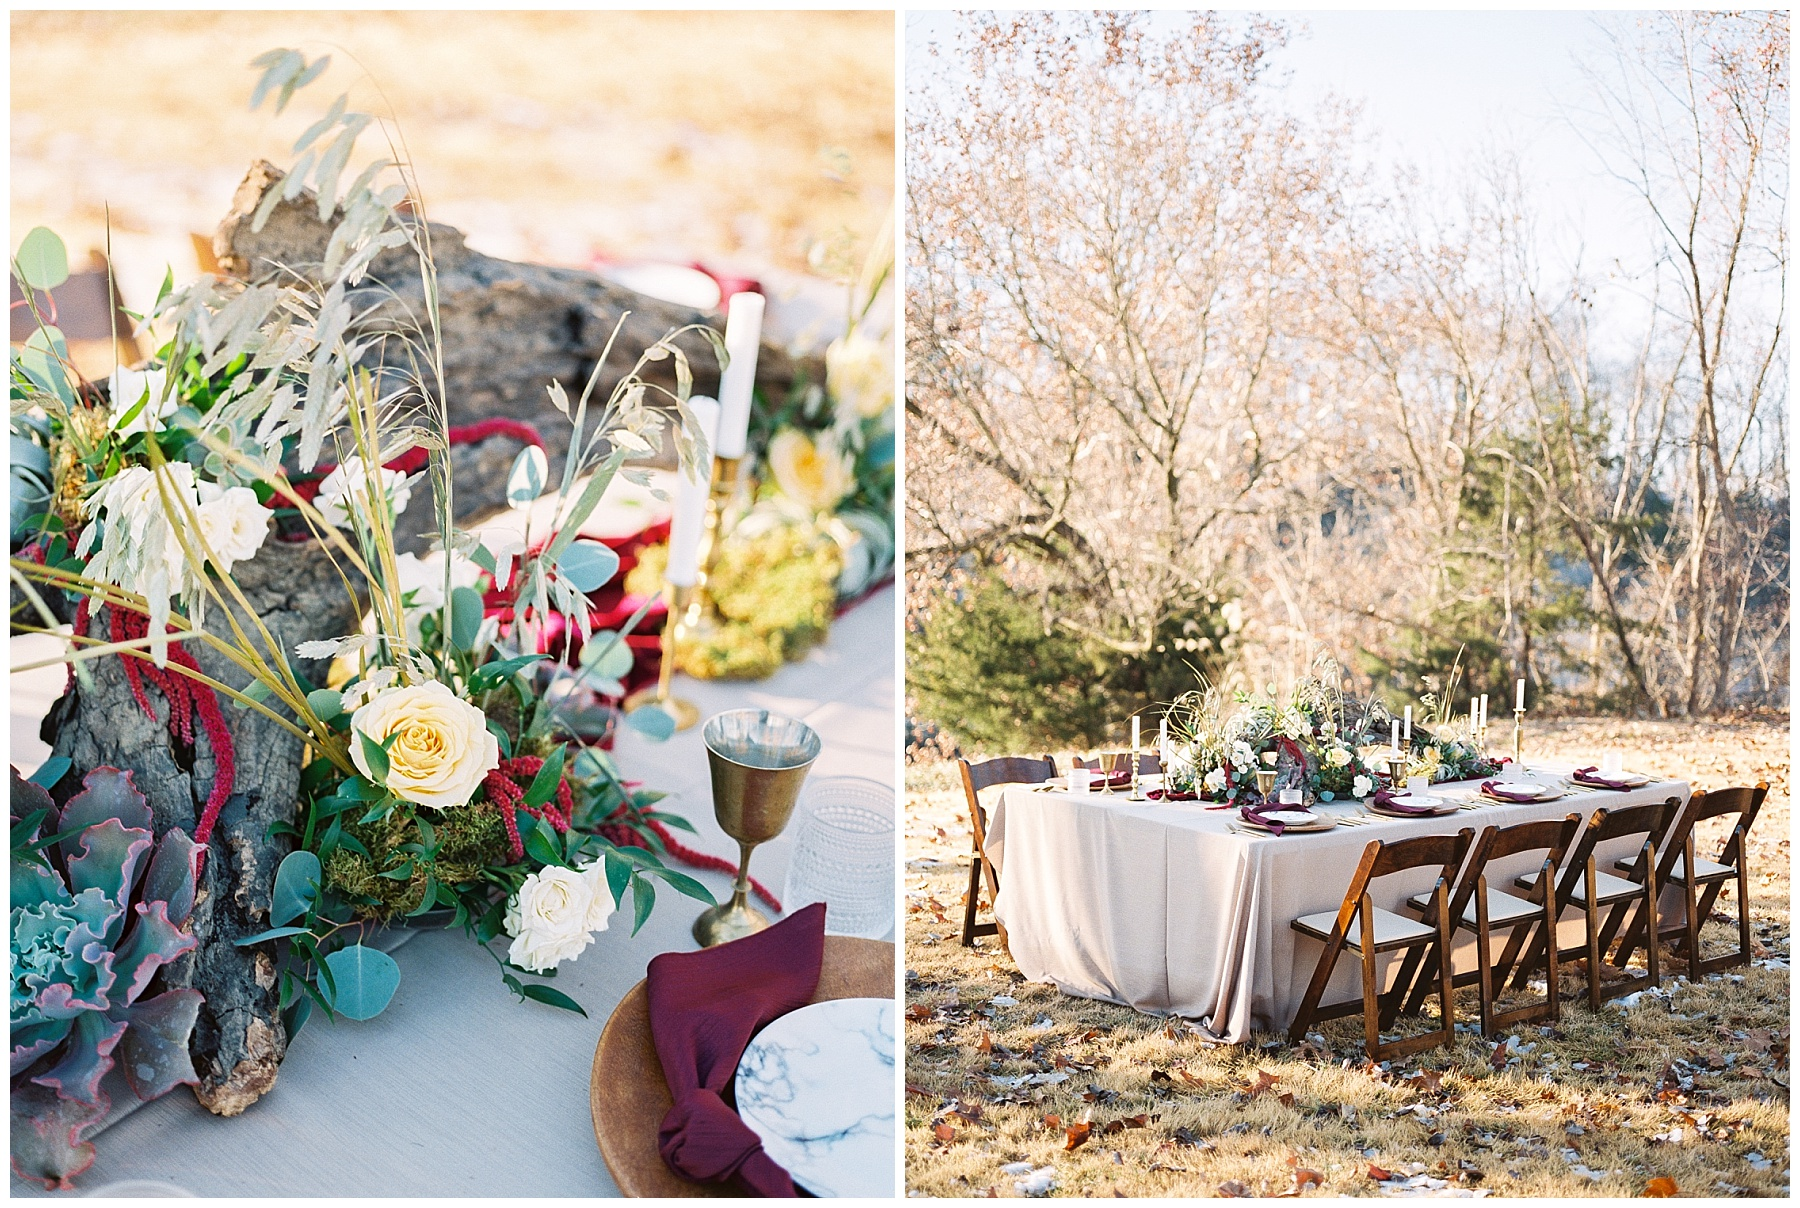 Snowy Winter Wedding at Wildcliff Events Lake With Earthy Jewel Tones and Organic Refined Style by Kelsi Kliethermes Photography Kansas City Missouri Wedding Photographer_0079.jpg